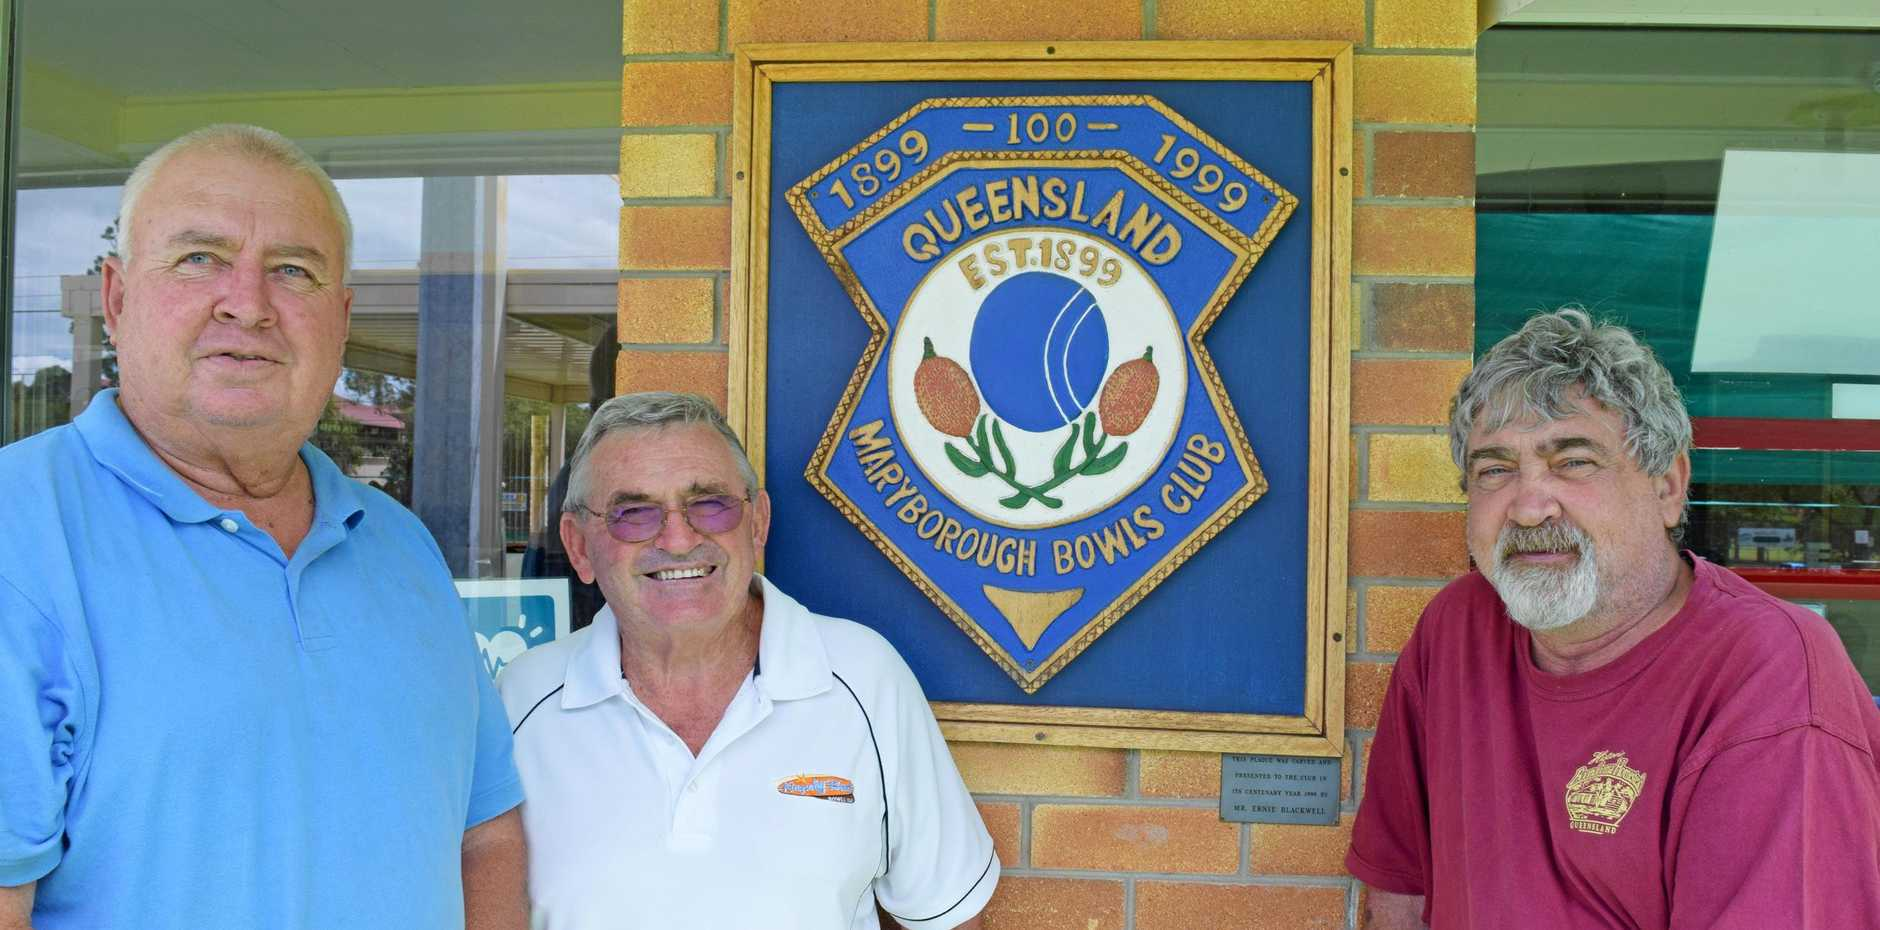 Maryborough Bowls Club members (from left) Laurie Genrich, Des Blazely and Bob Magee are working together to develop a strategic plan for their club's future.